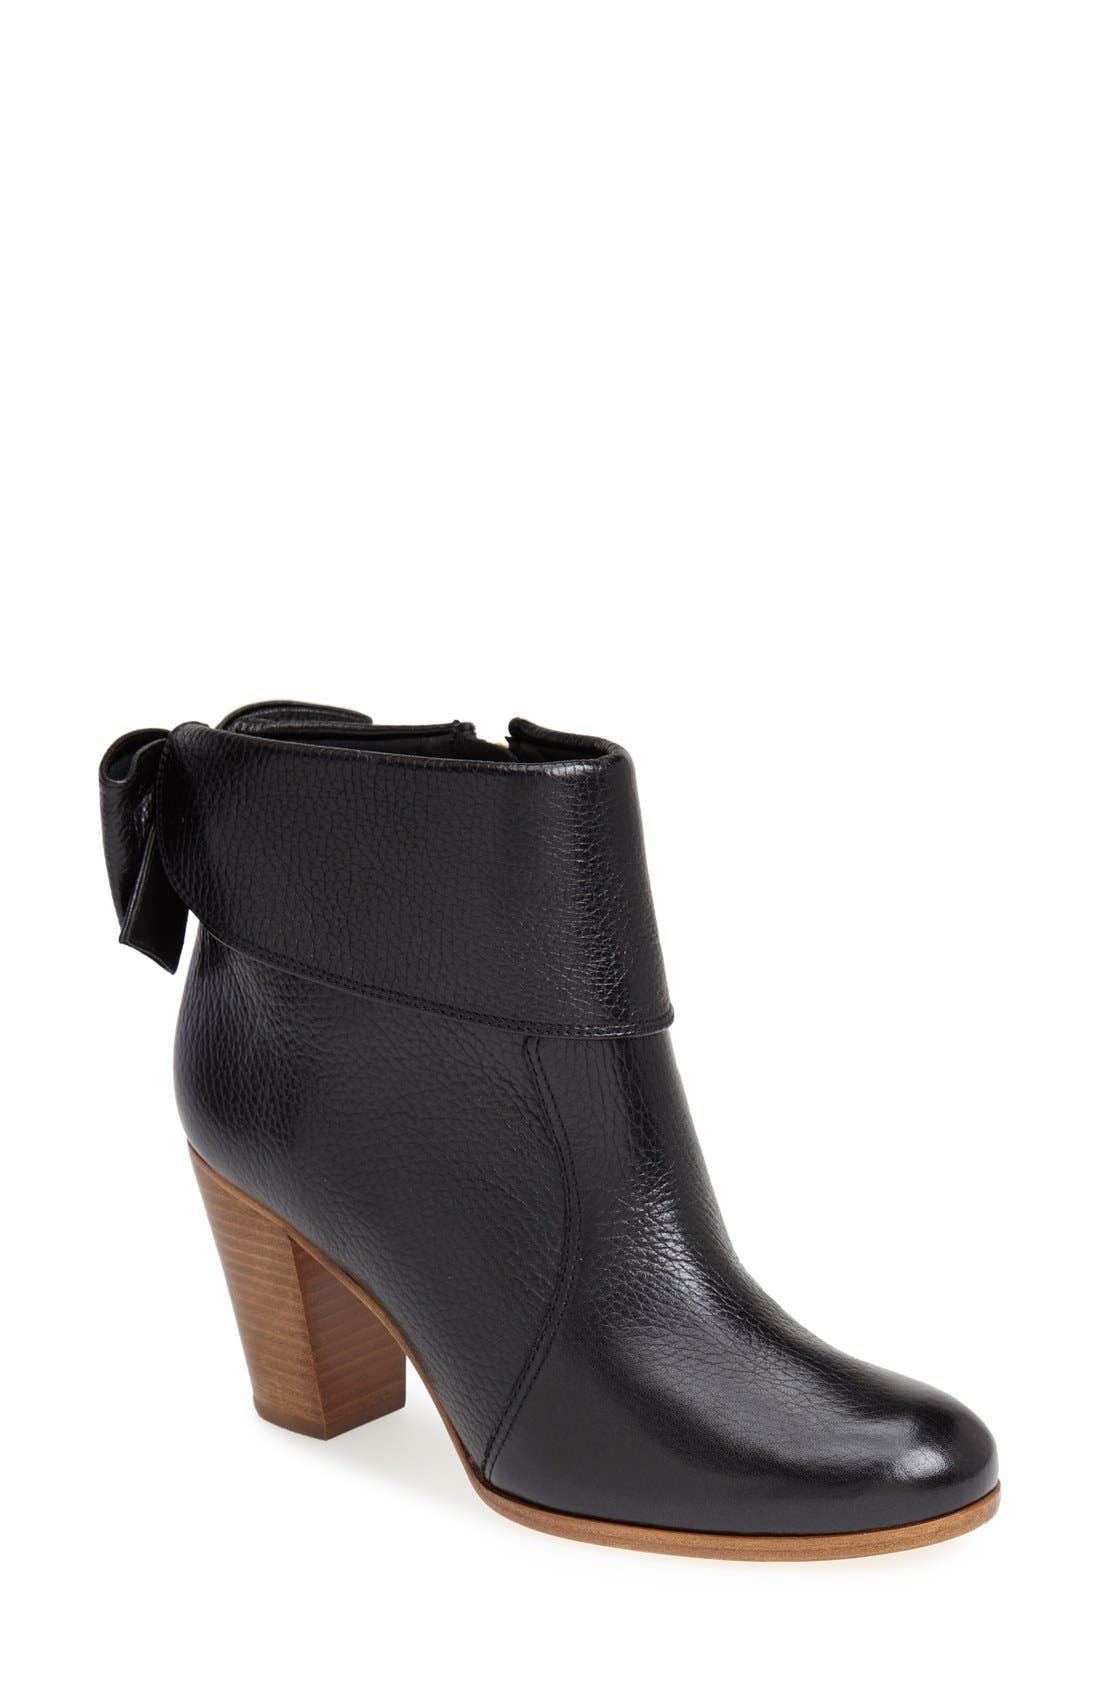 Main Image - kate spade new york 'lanise' leather boot (Women)